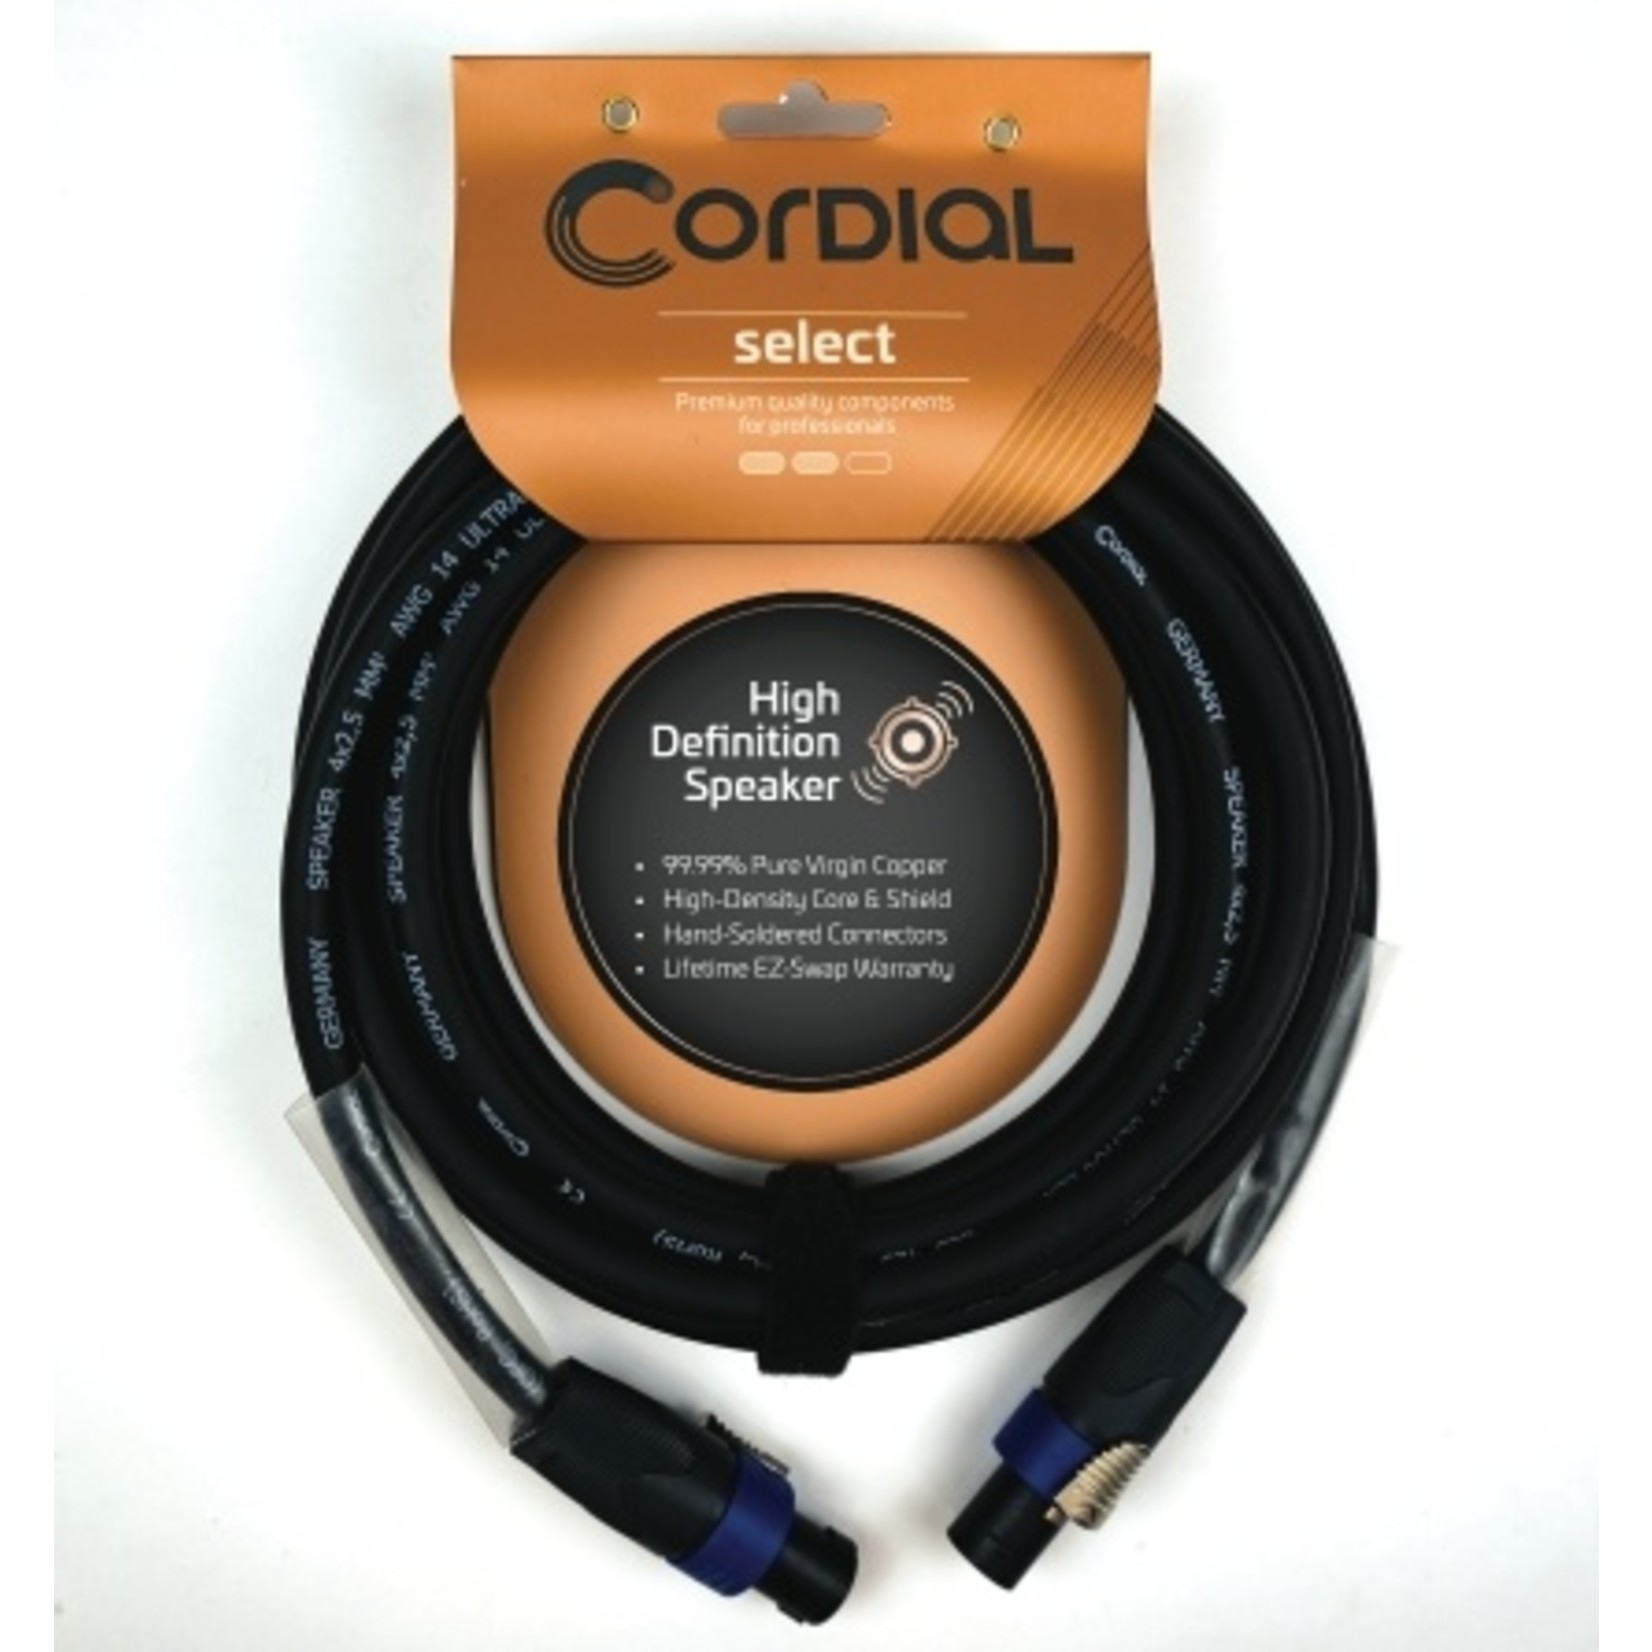 Cordial Cables Cordial Cables Premium Speaker Cable with speakON to speakON Connectors, Select Series - Premium 4-Pole, 2.5mm² Gage Selecter, 50-Foot Cable